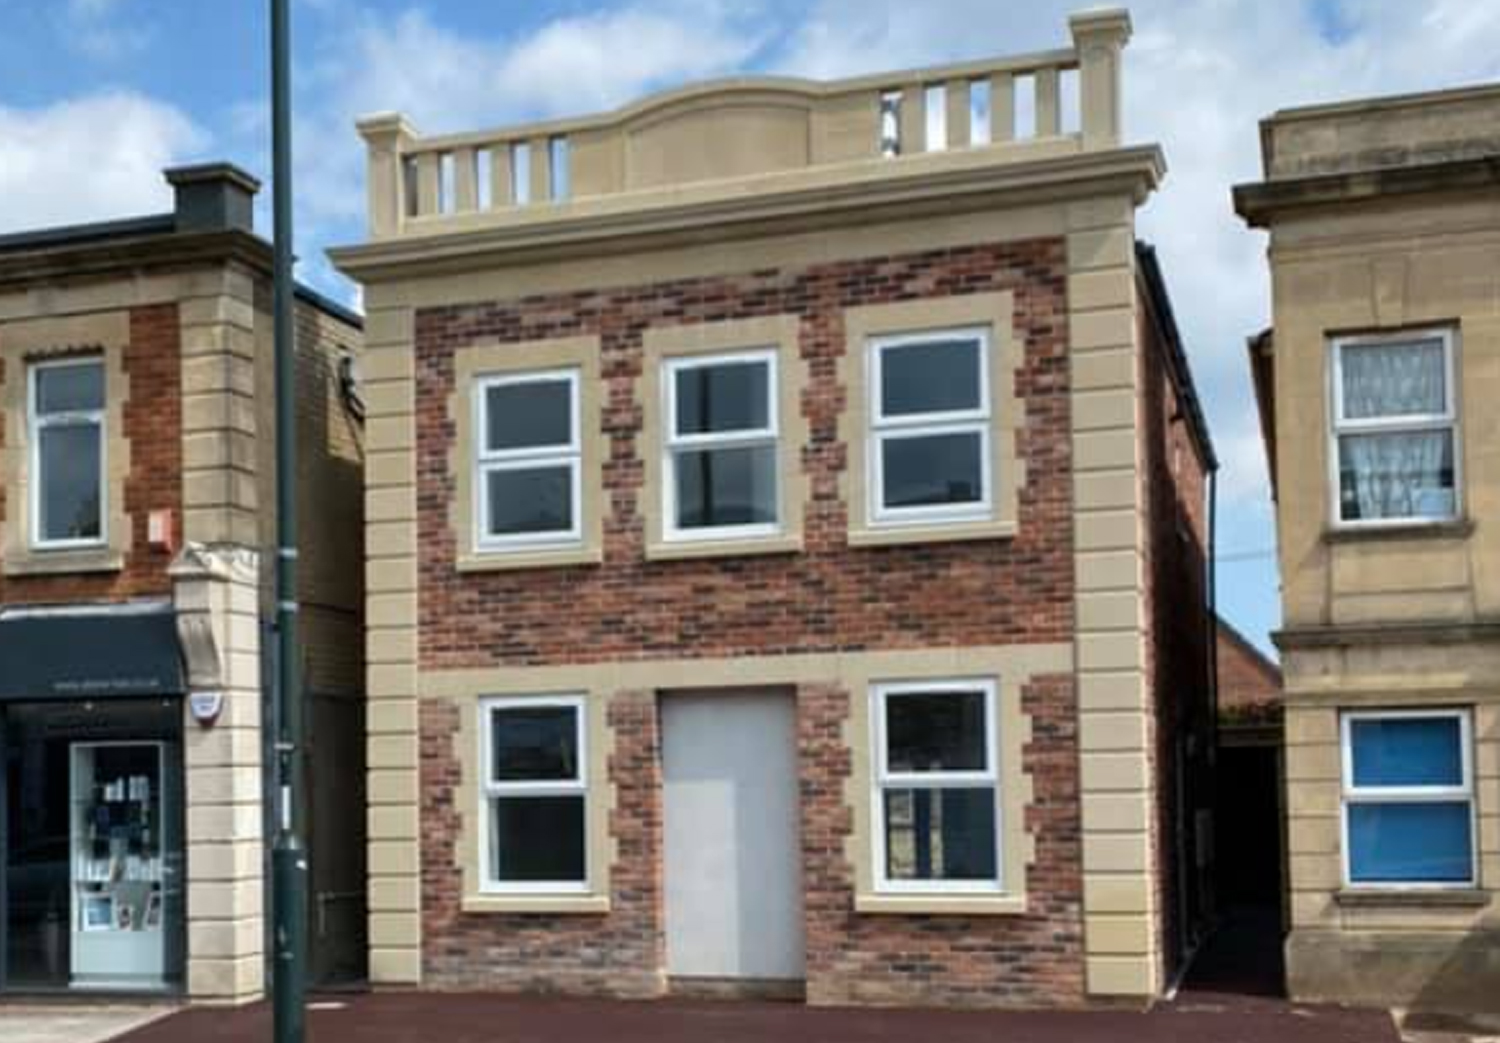 Moordown. Completed 2020. Two 2 bedroom flats. Keeping in style with existing building and stone detailing.